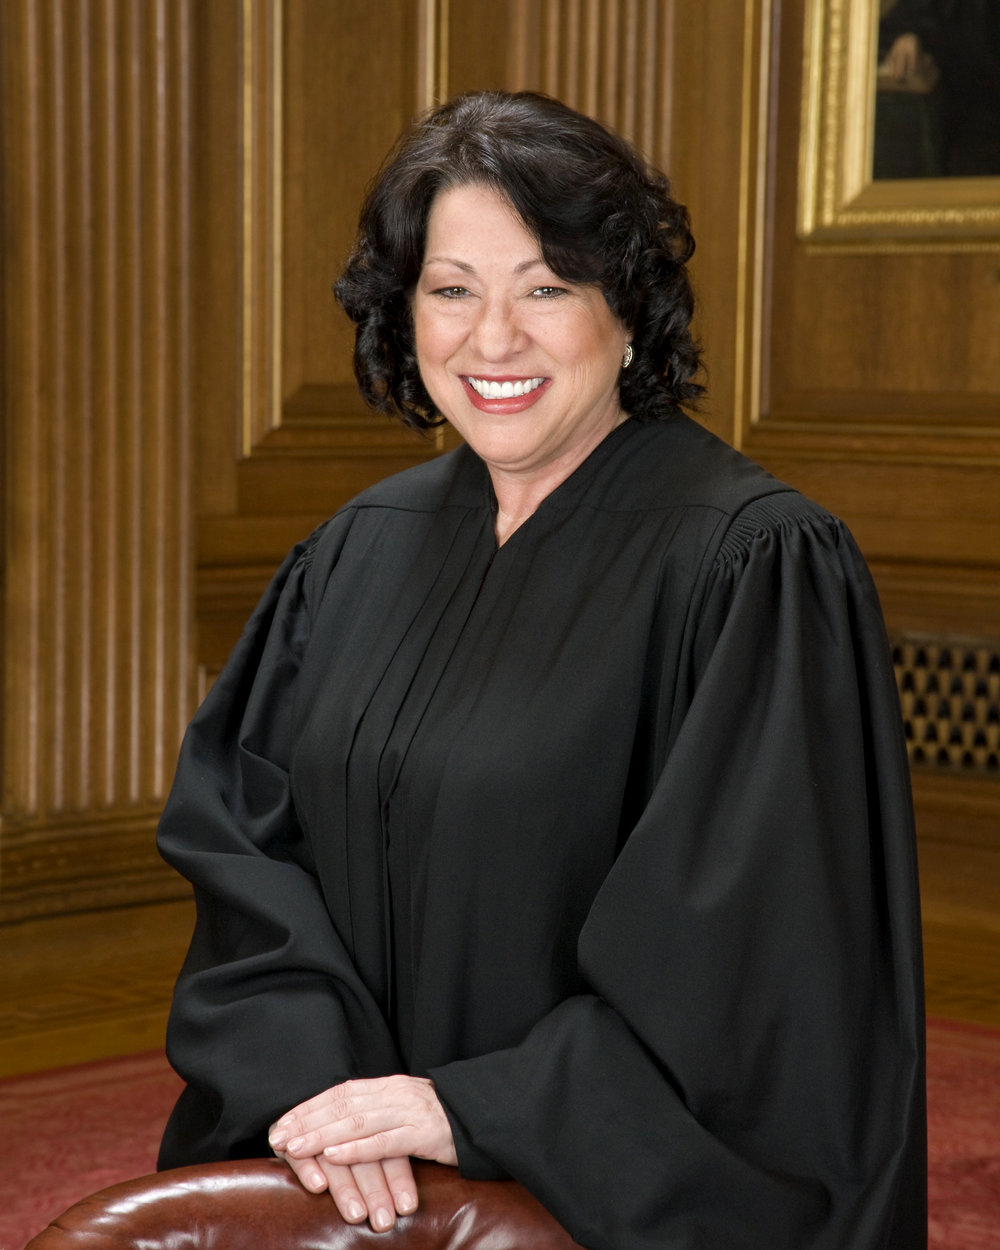 Sonia_Sotomayor_in_SCOTUS_robe.jpg